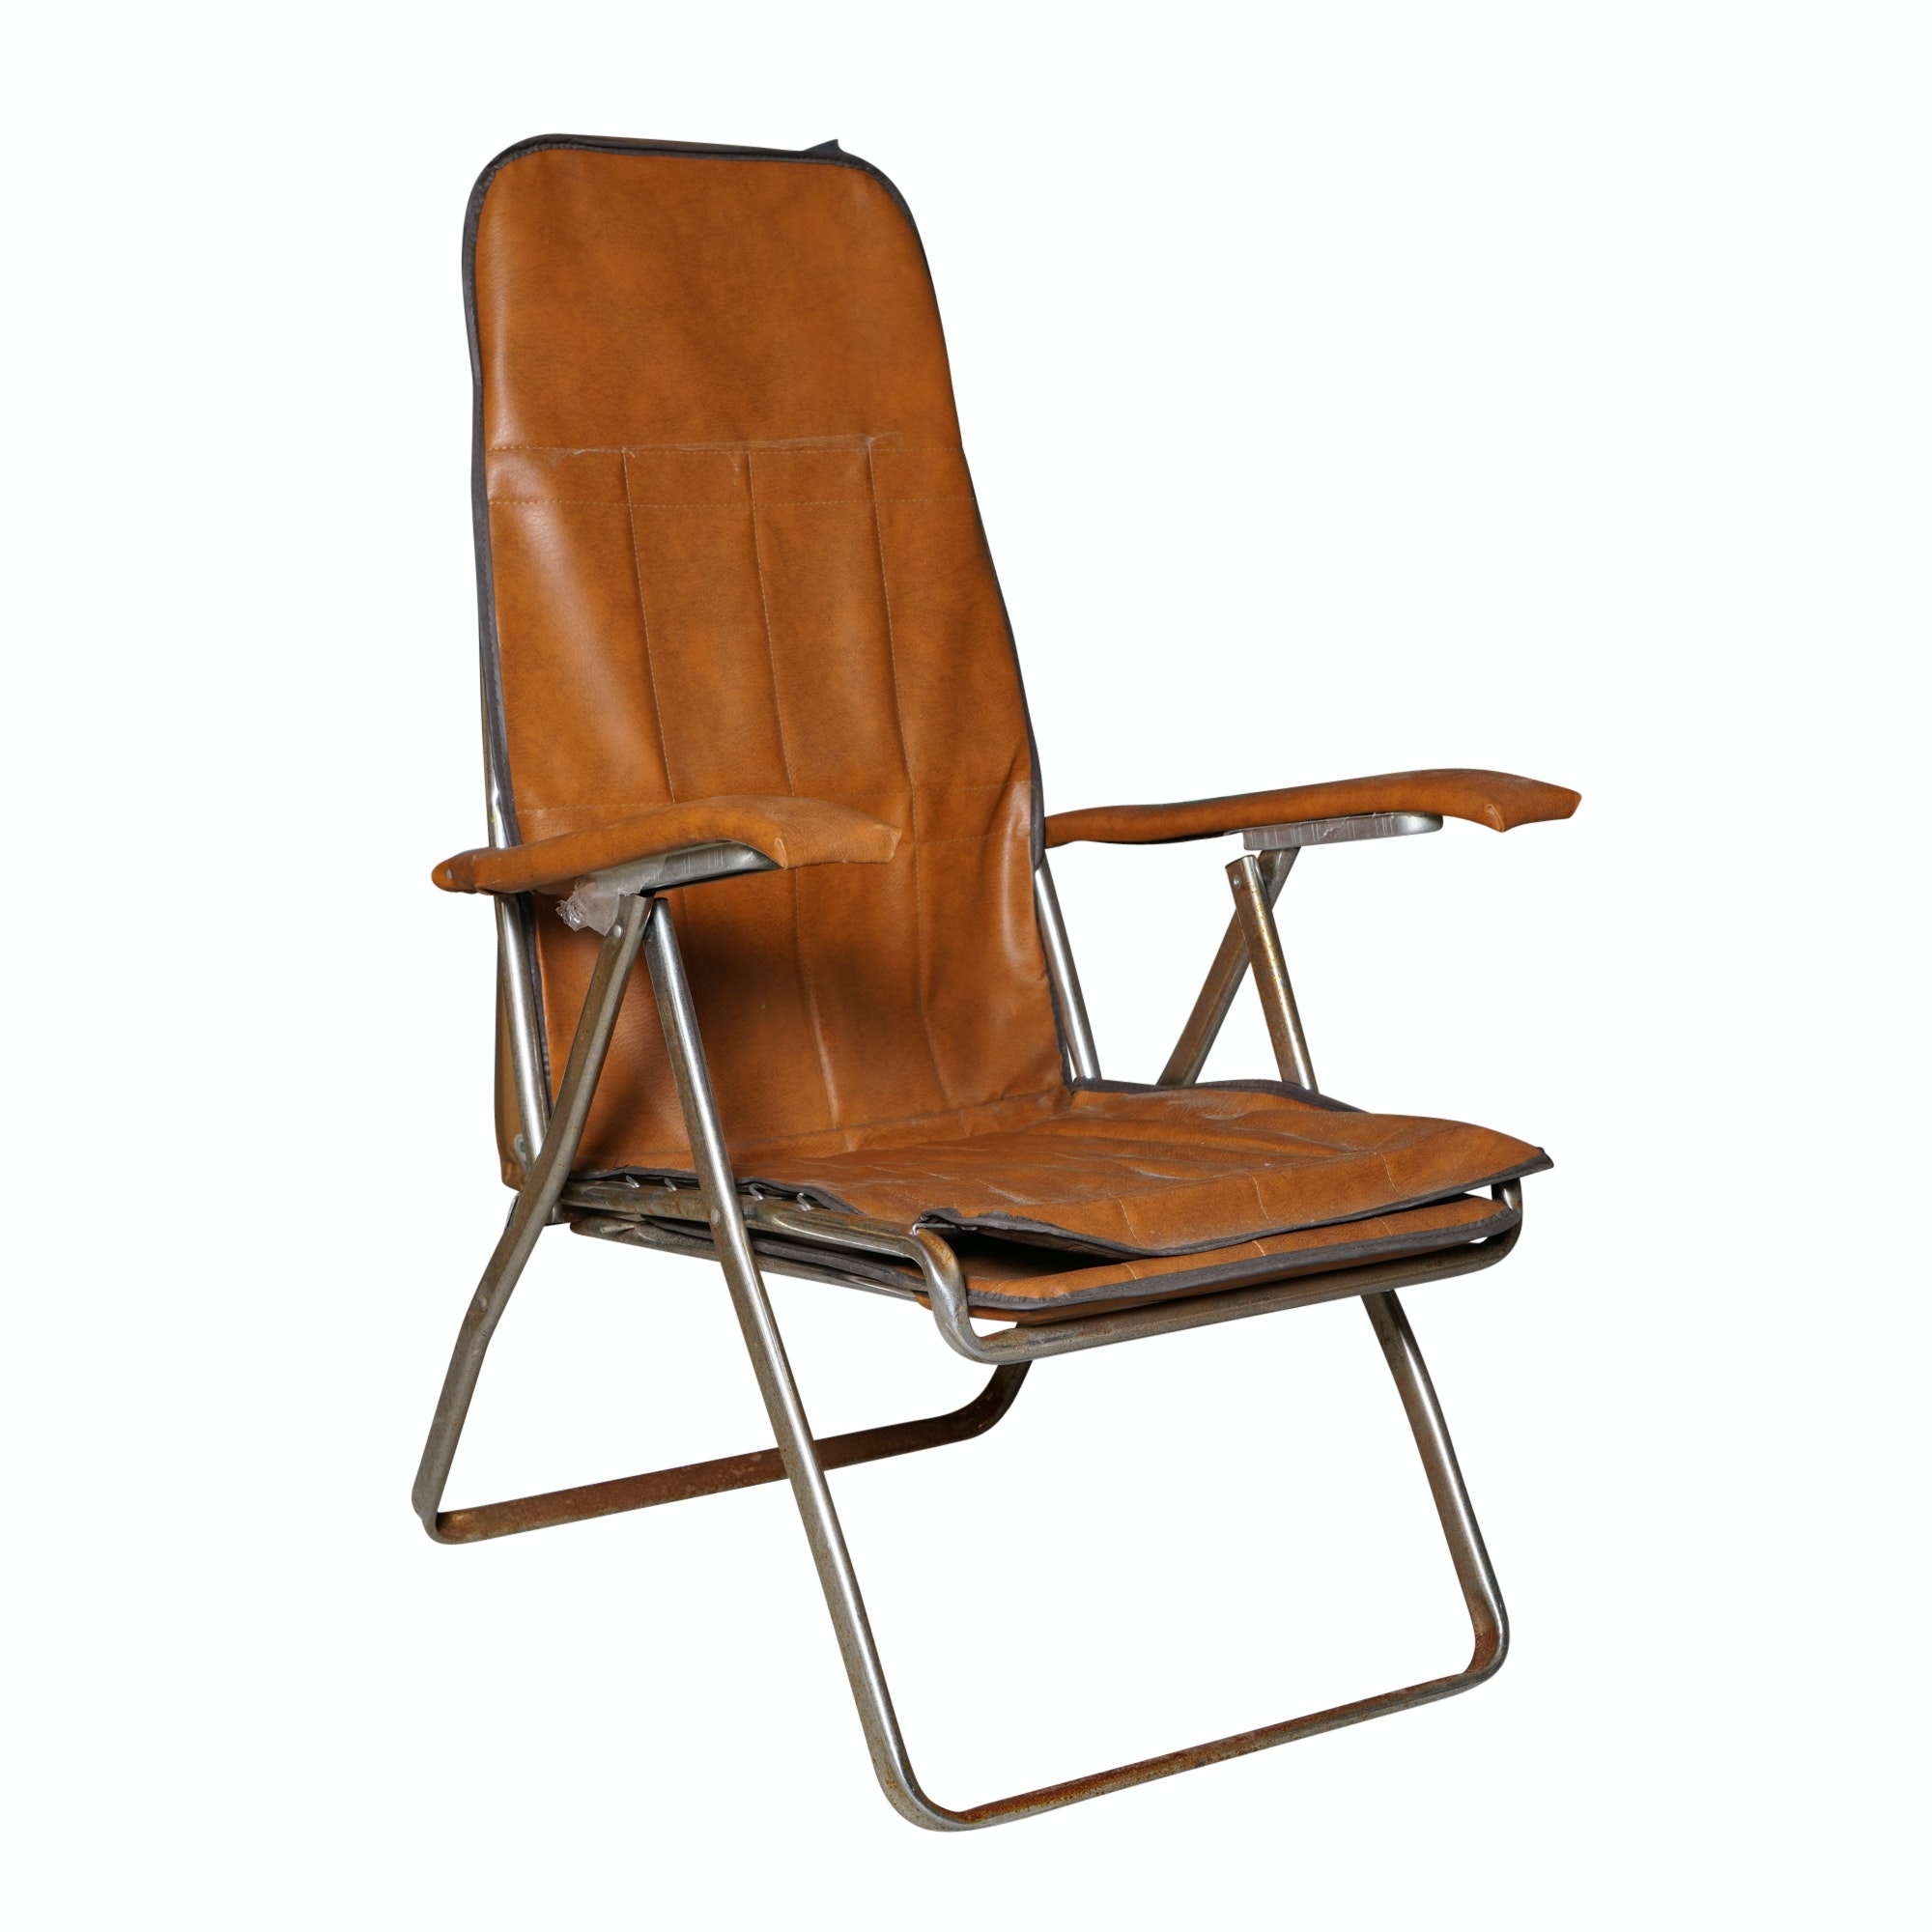 Italian Faux Leather Folding Chair